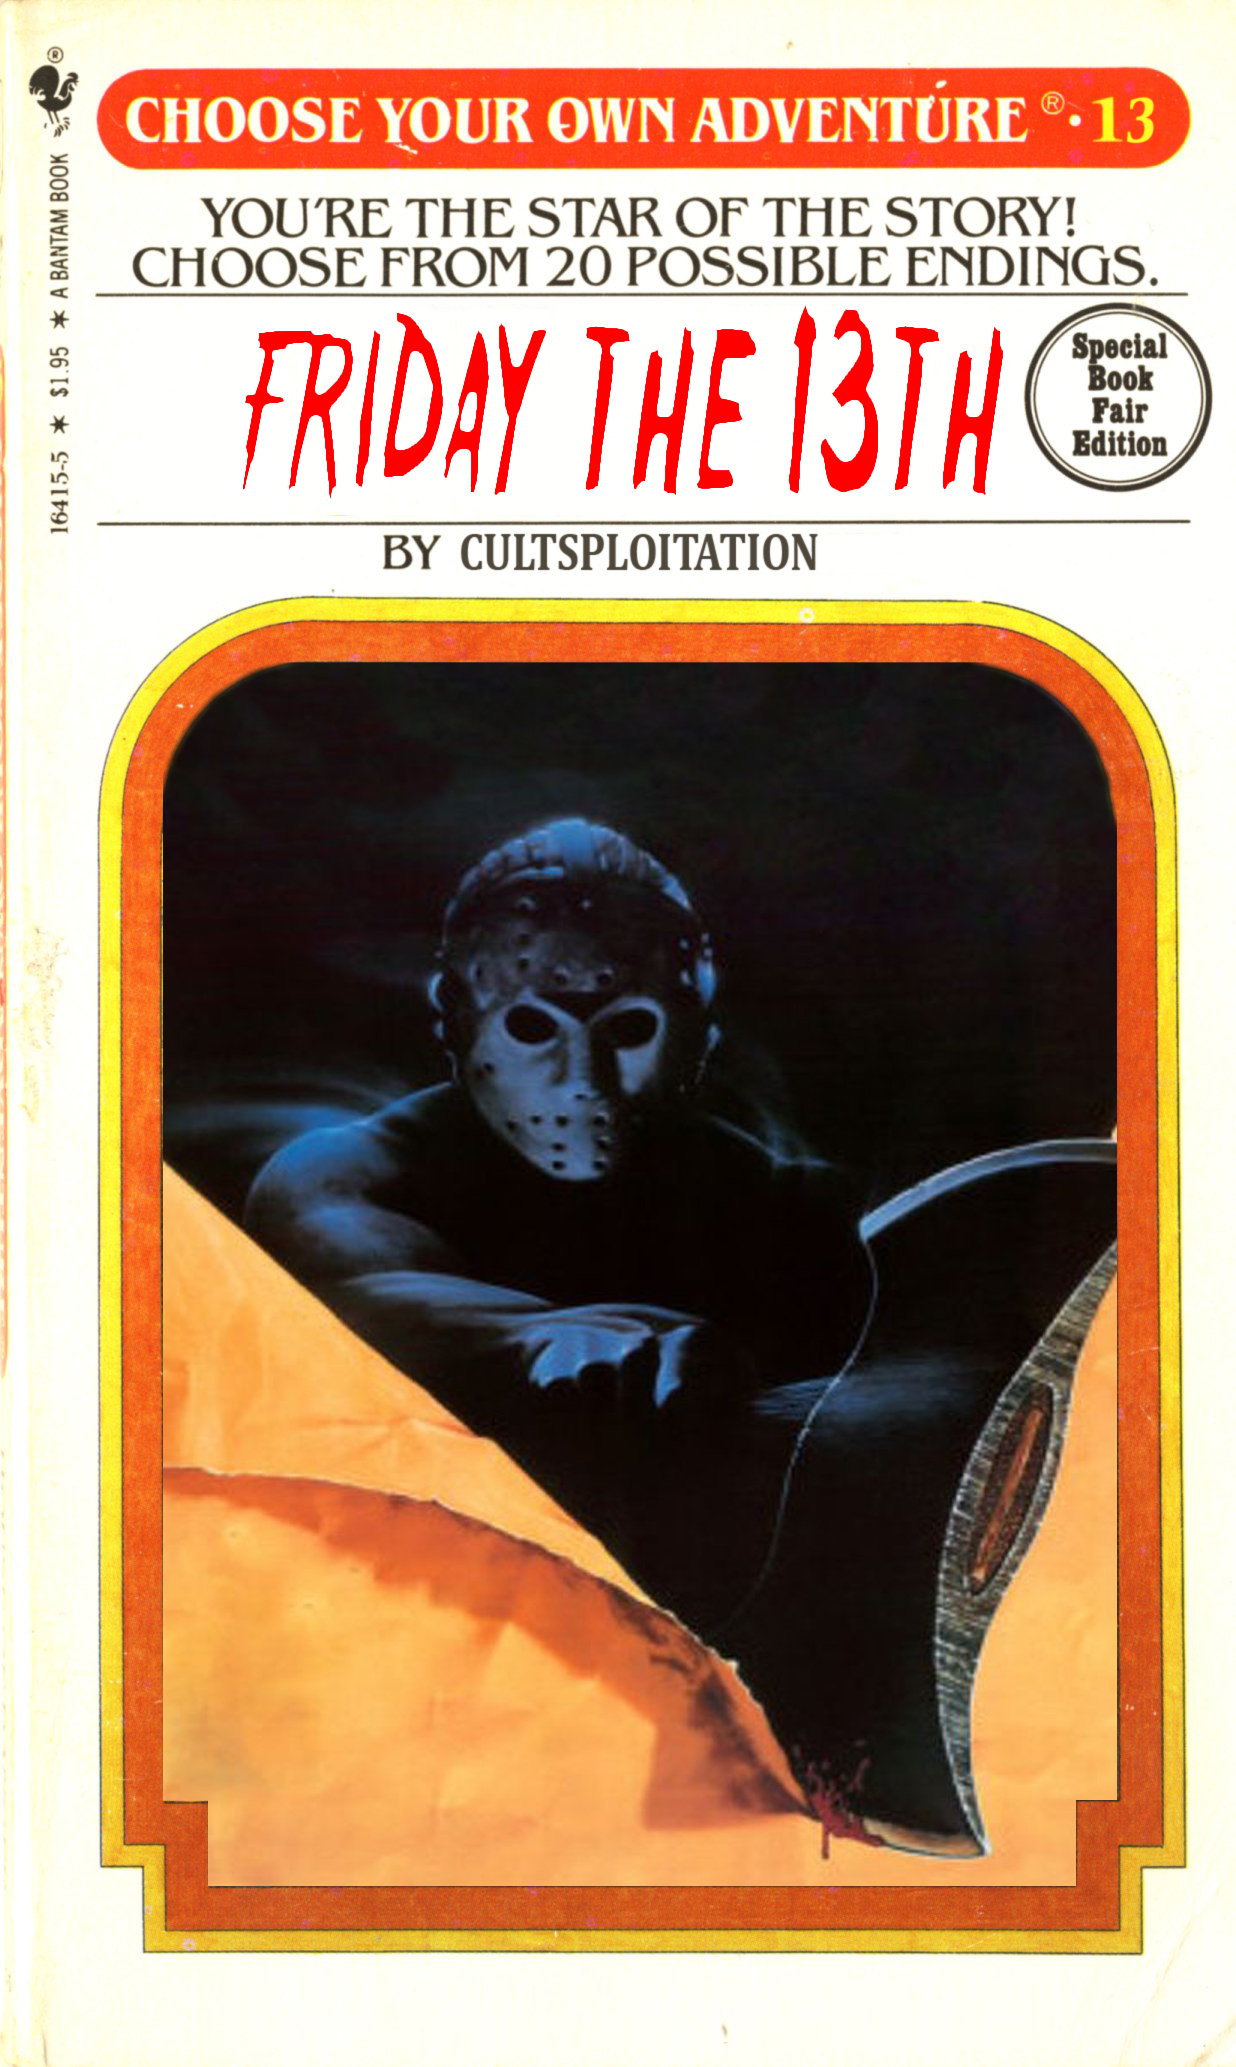 CHOOSE YOUR OWN ADVENTURE: Friday the 13th Choice 3D - Cultsploitation